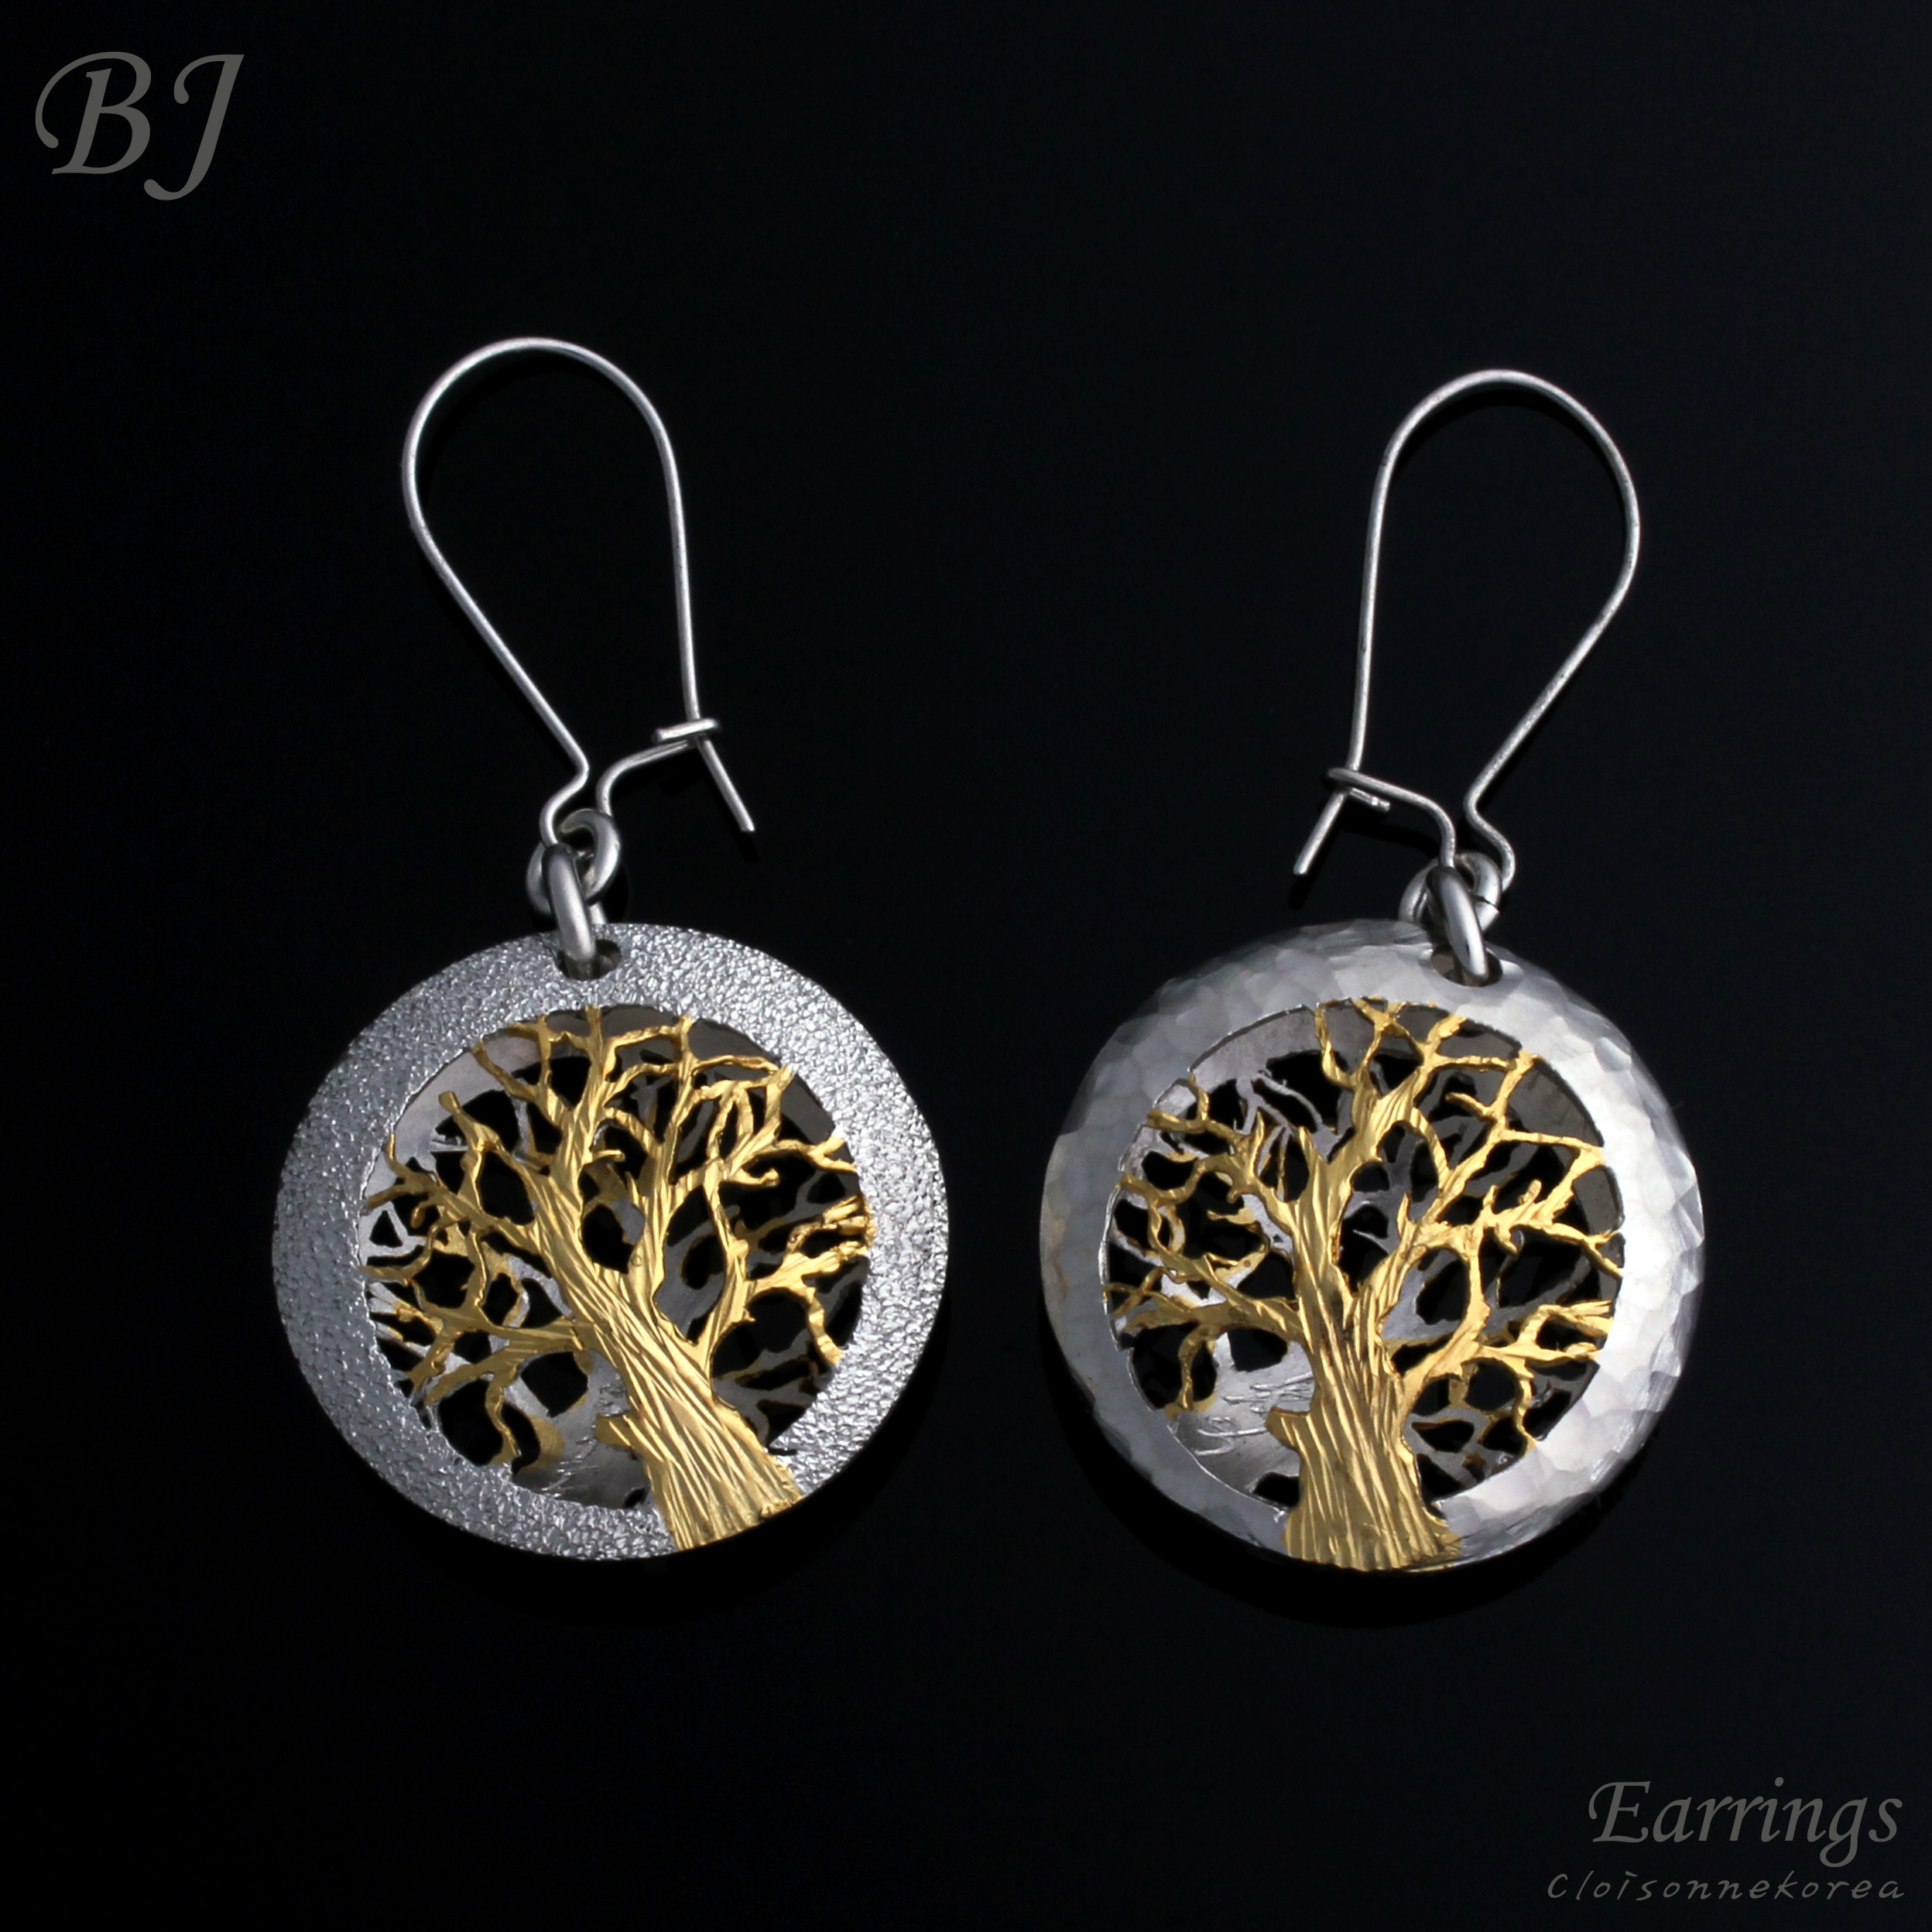 handmade sterling silver earrings